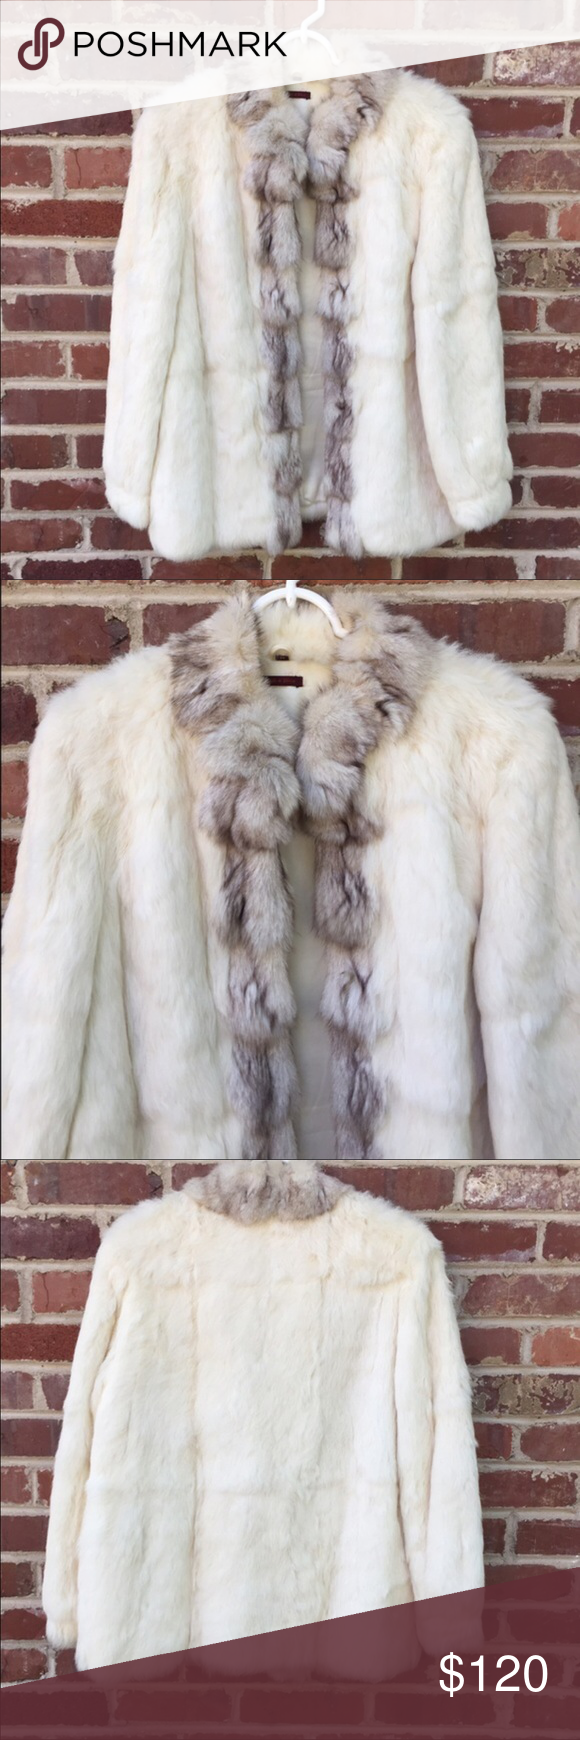 Stunning White Fur Jacket I absolutely love this jacket!  I enthusiastically bought this from another posher but it is too big on me 😢.  Just looking to get my $ back with this sale.  In perfect condition! Jackets & Coats